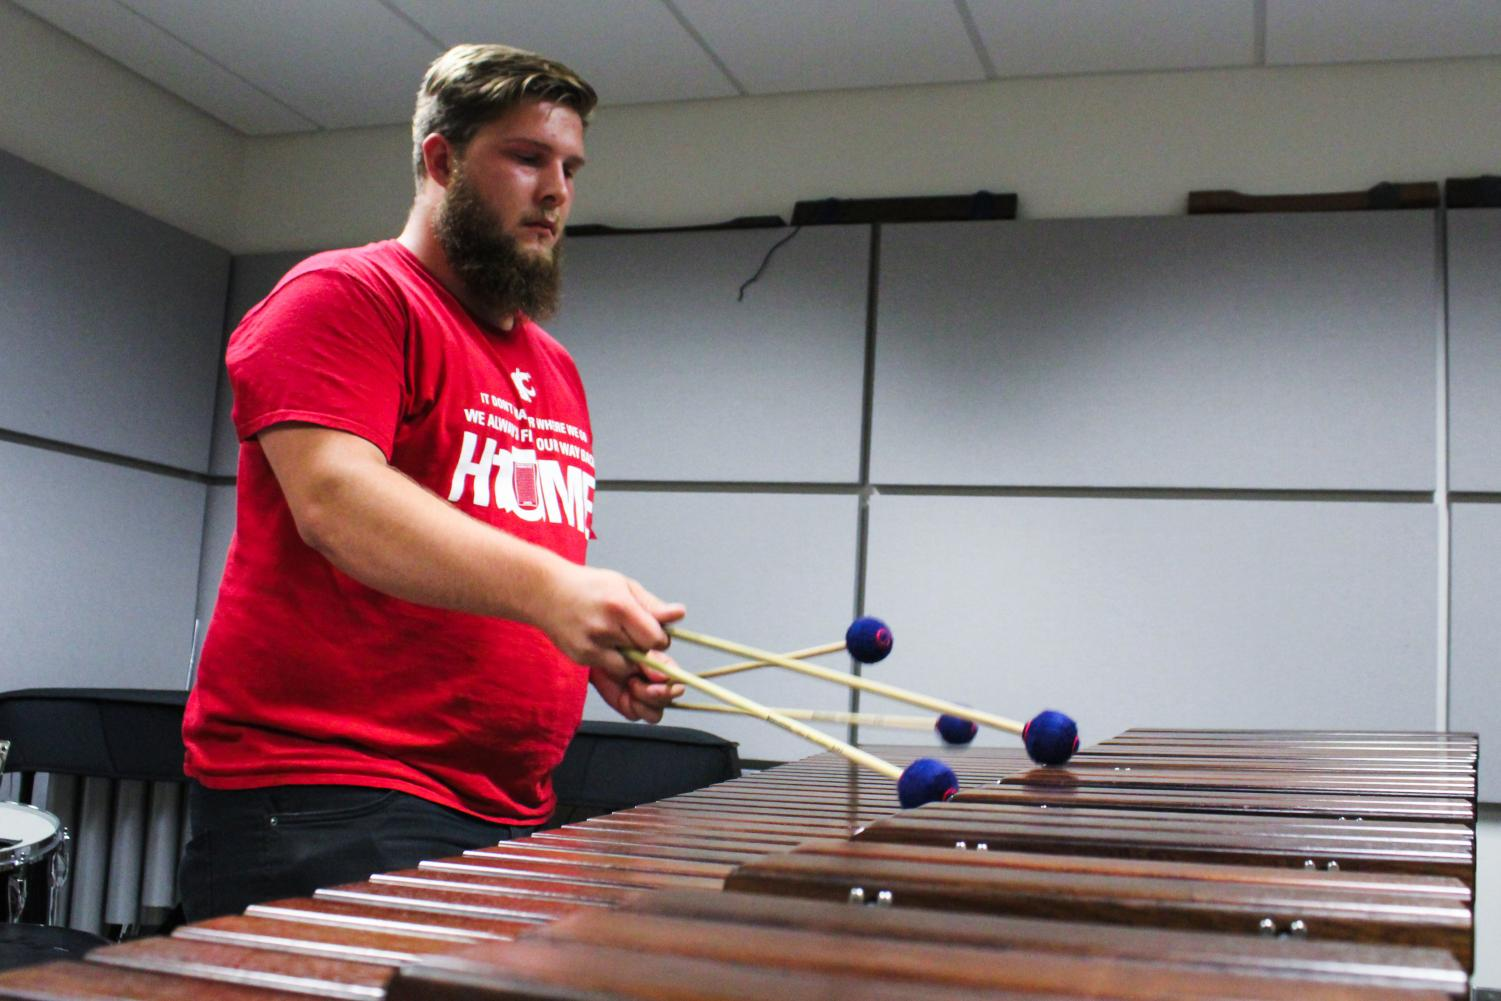 Music student Nick Theriault will perform a classical repertoire on several percussion instruments for a panel of judges Friday.